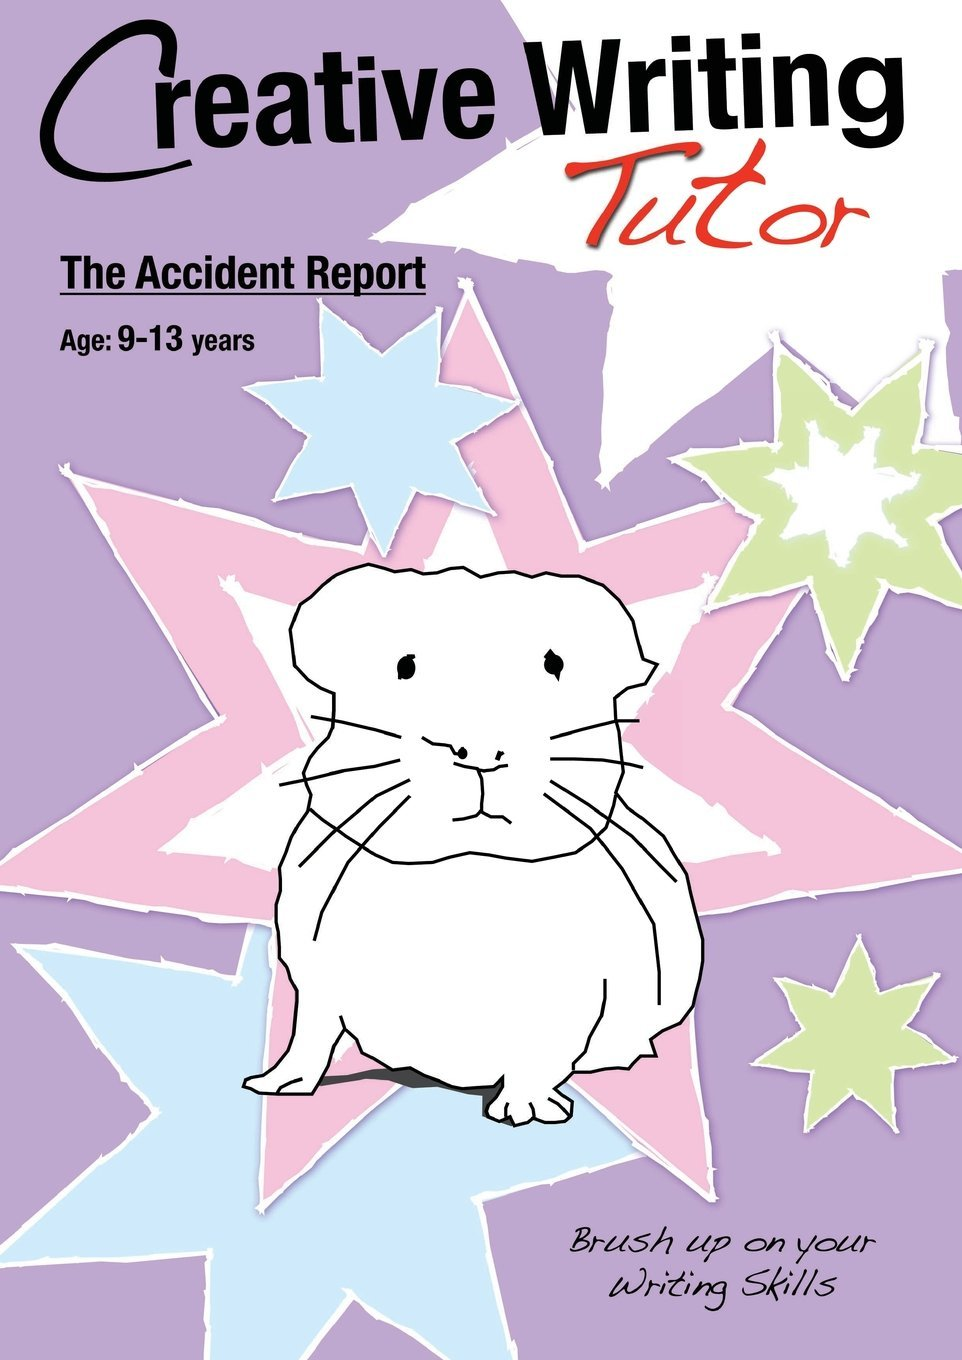 Read Online The Accident Report (Brush Up On Your Writing Skills): Creative Writing Tutor (Volume 3) PDF